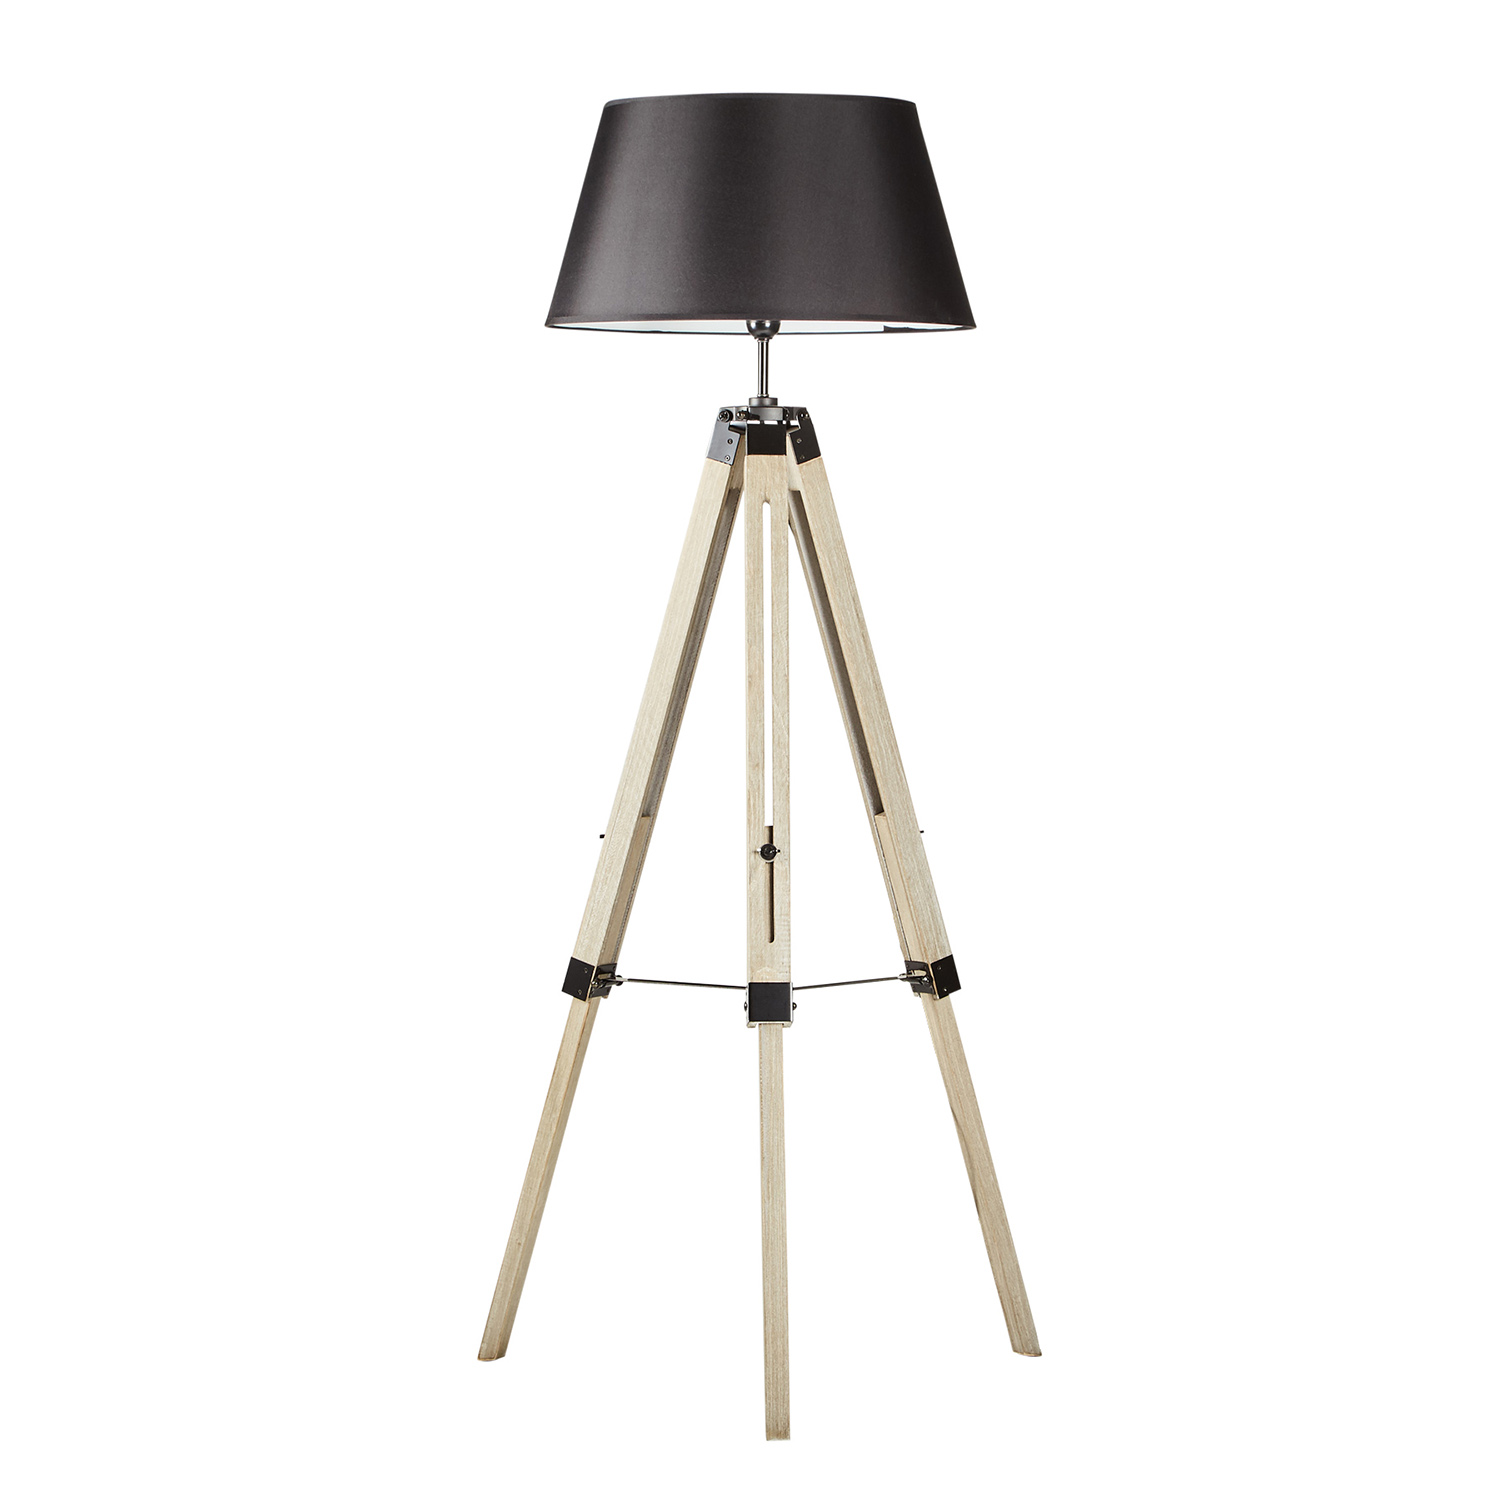 Designer Tripod Floor Lamp Black Linen Shade Home 150cm H Adjustable Wooden Ebay